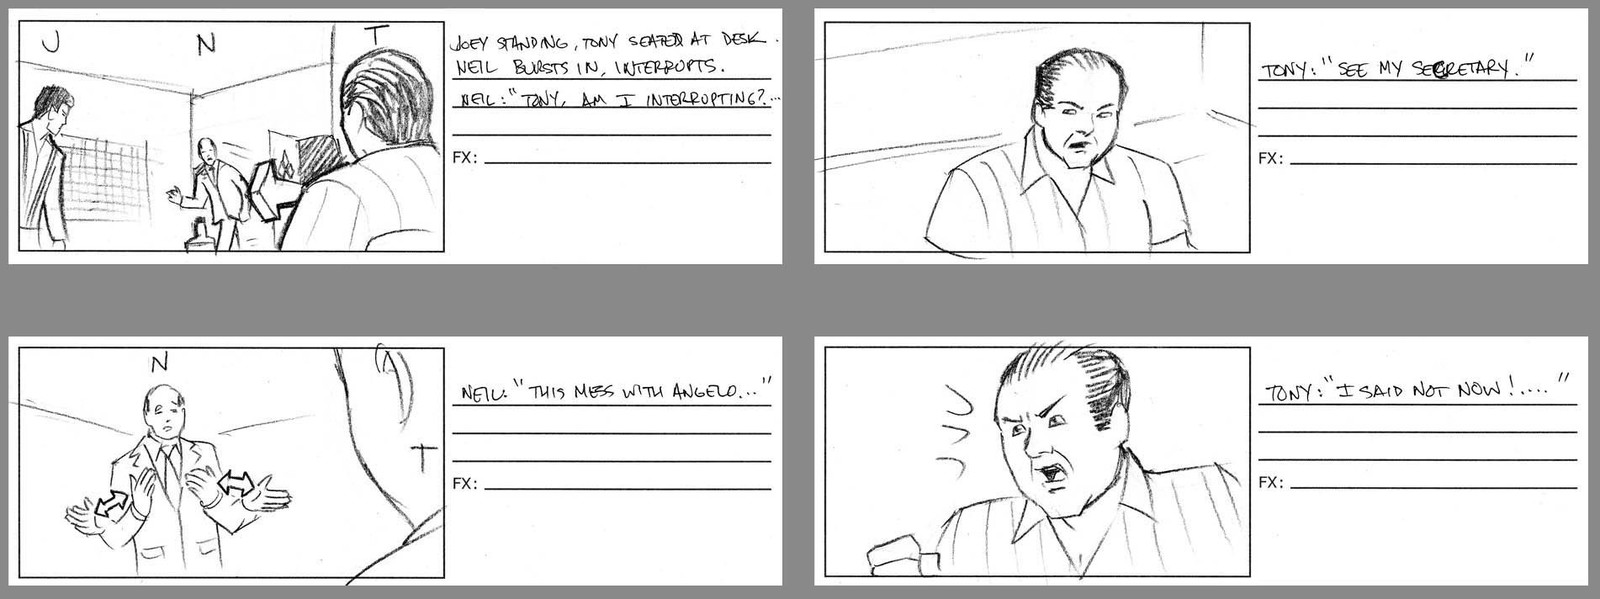 Sopranos Game Cinematic Boards